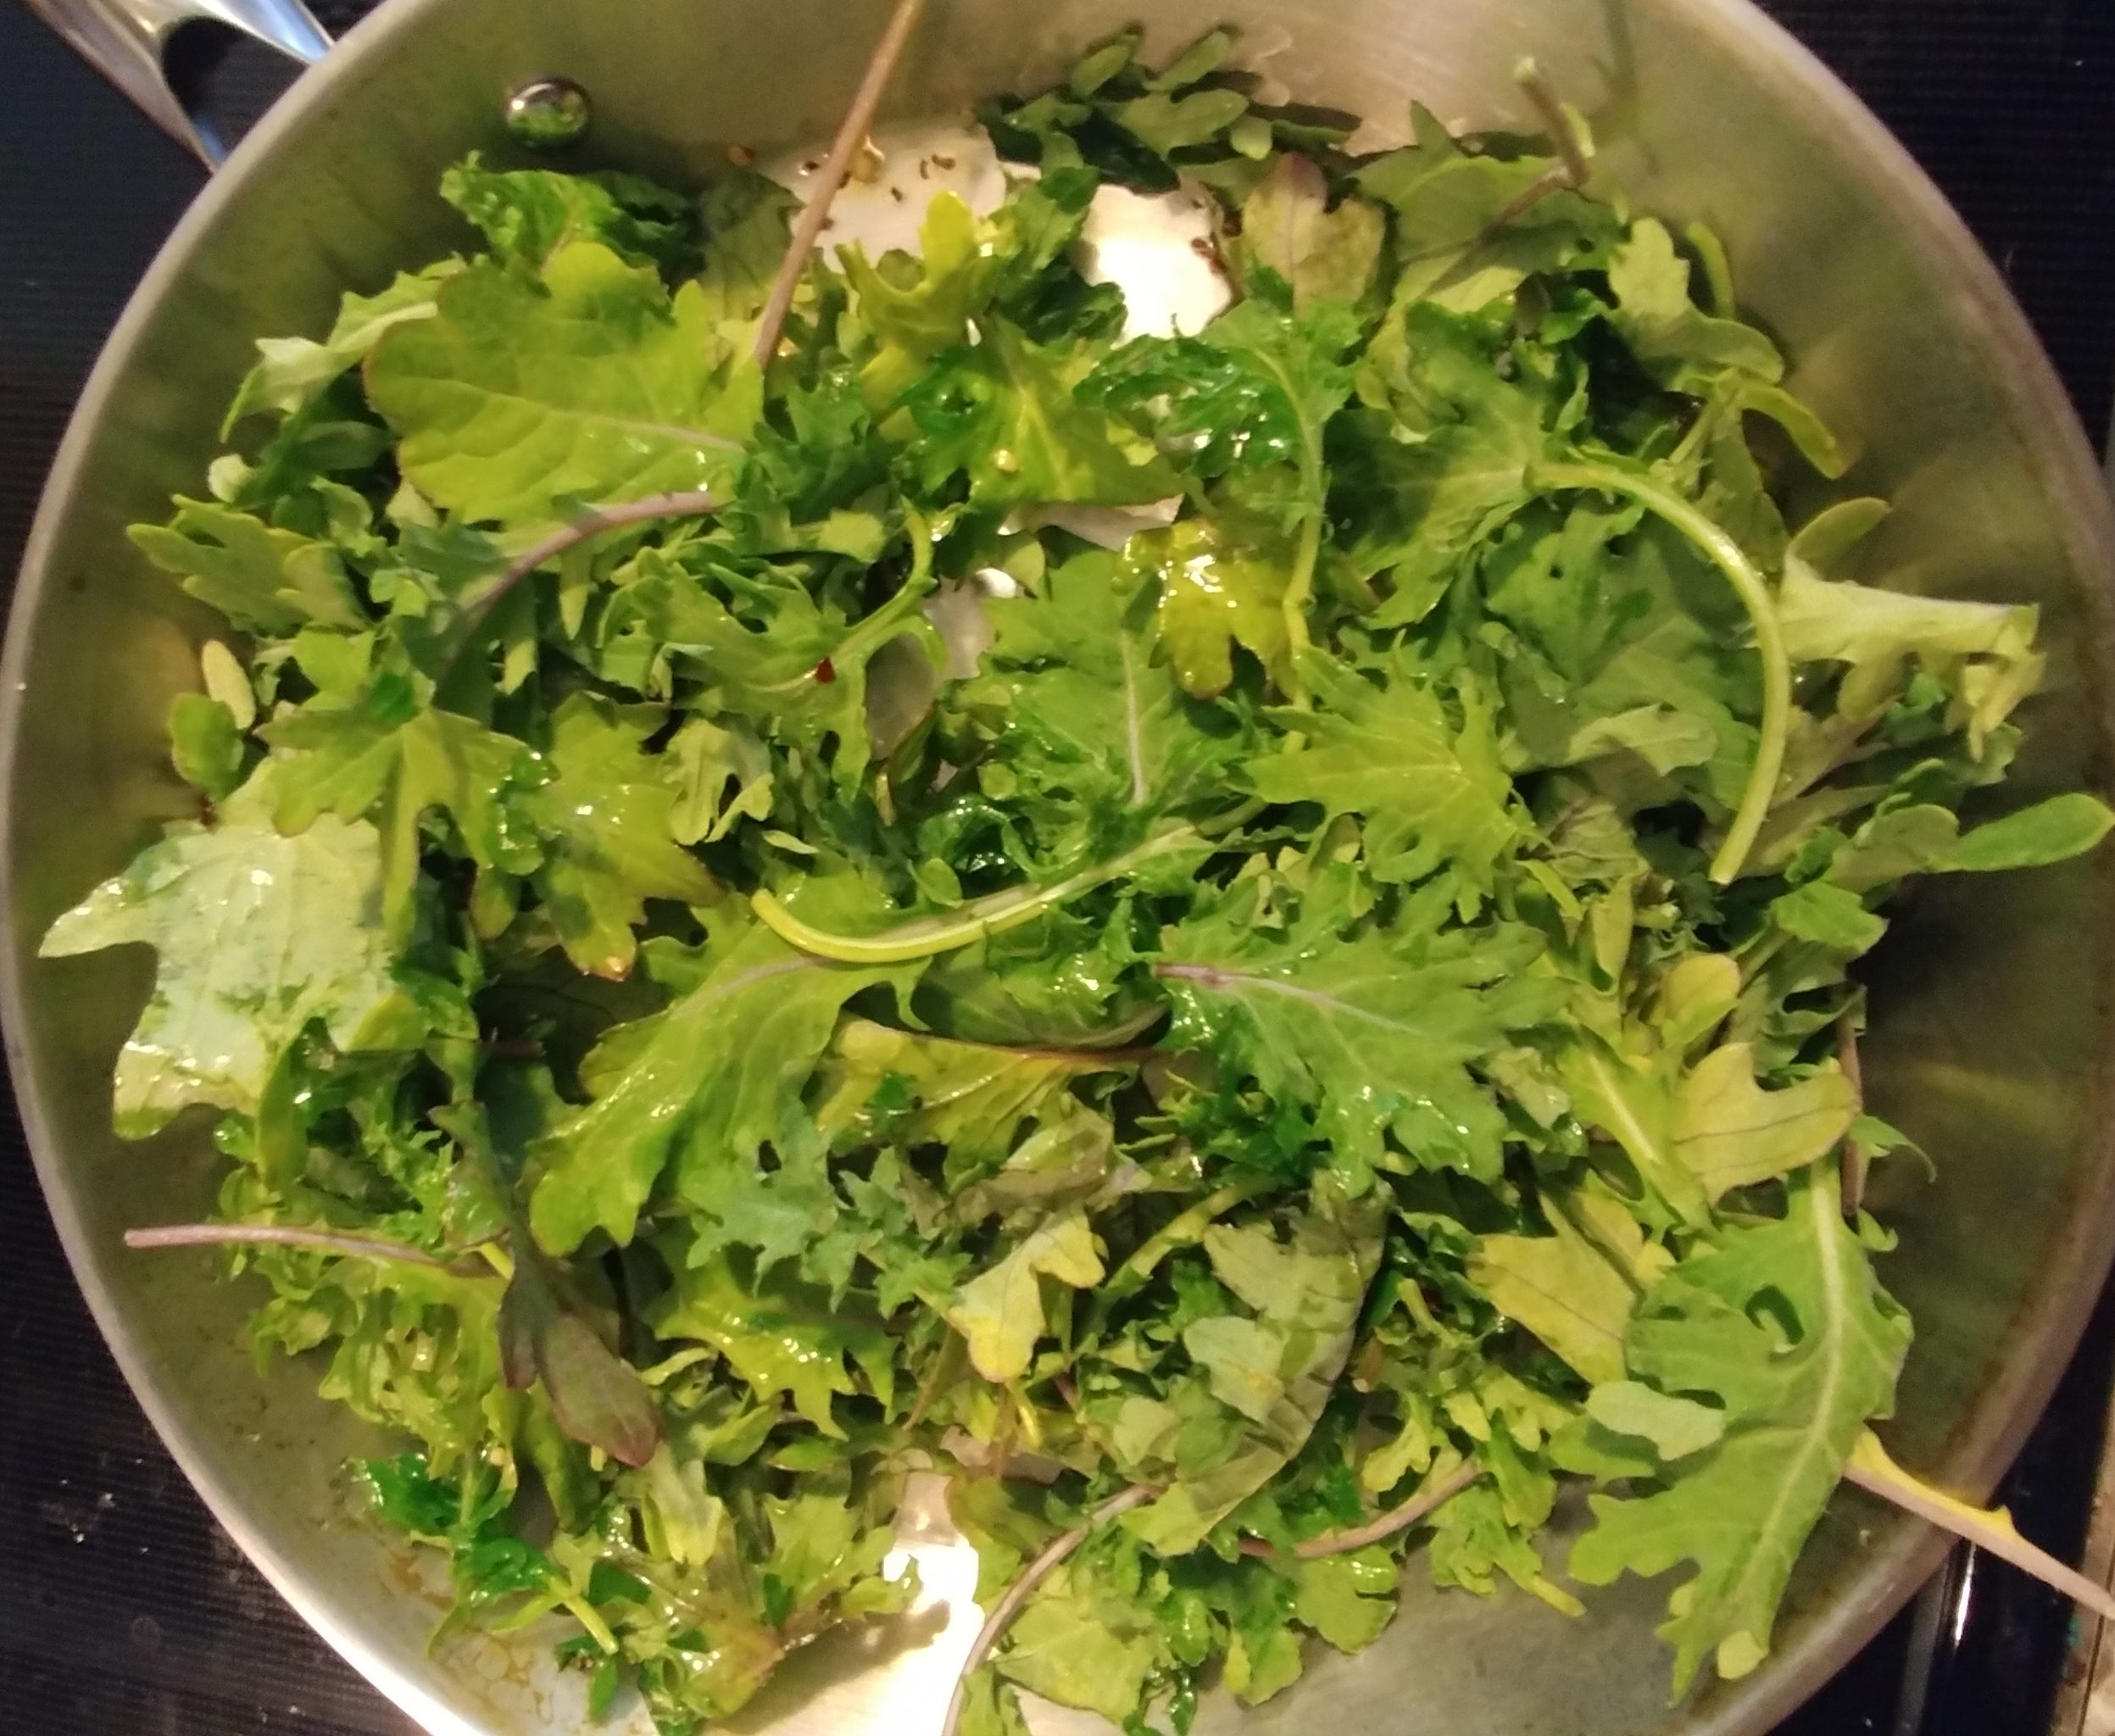 Spicy Garlicky Sautéed Kale and Spinach in Pan